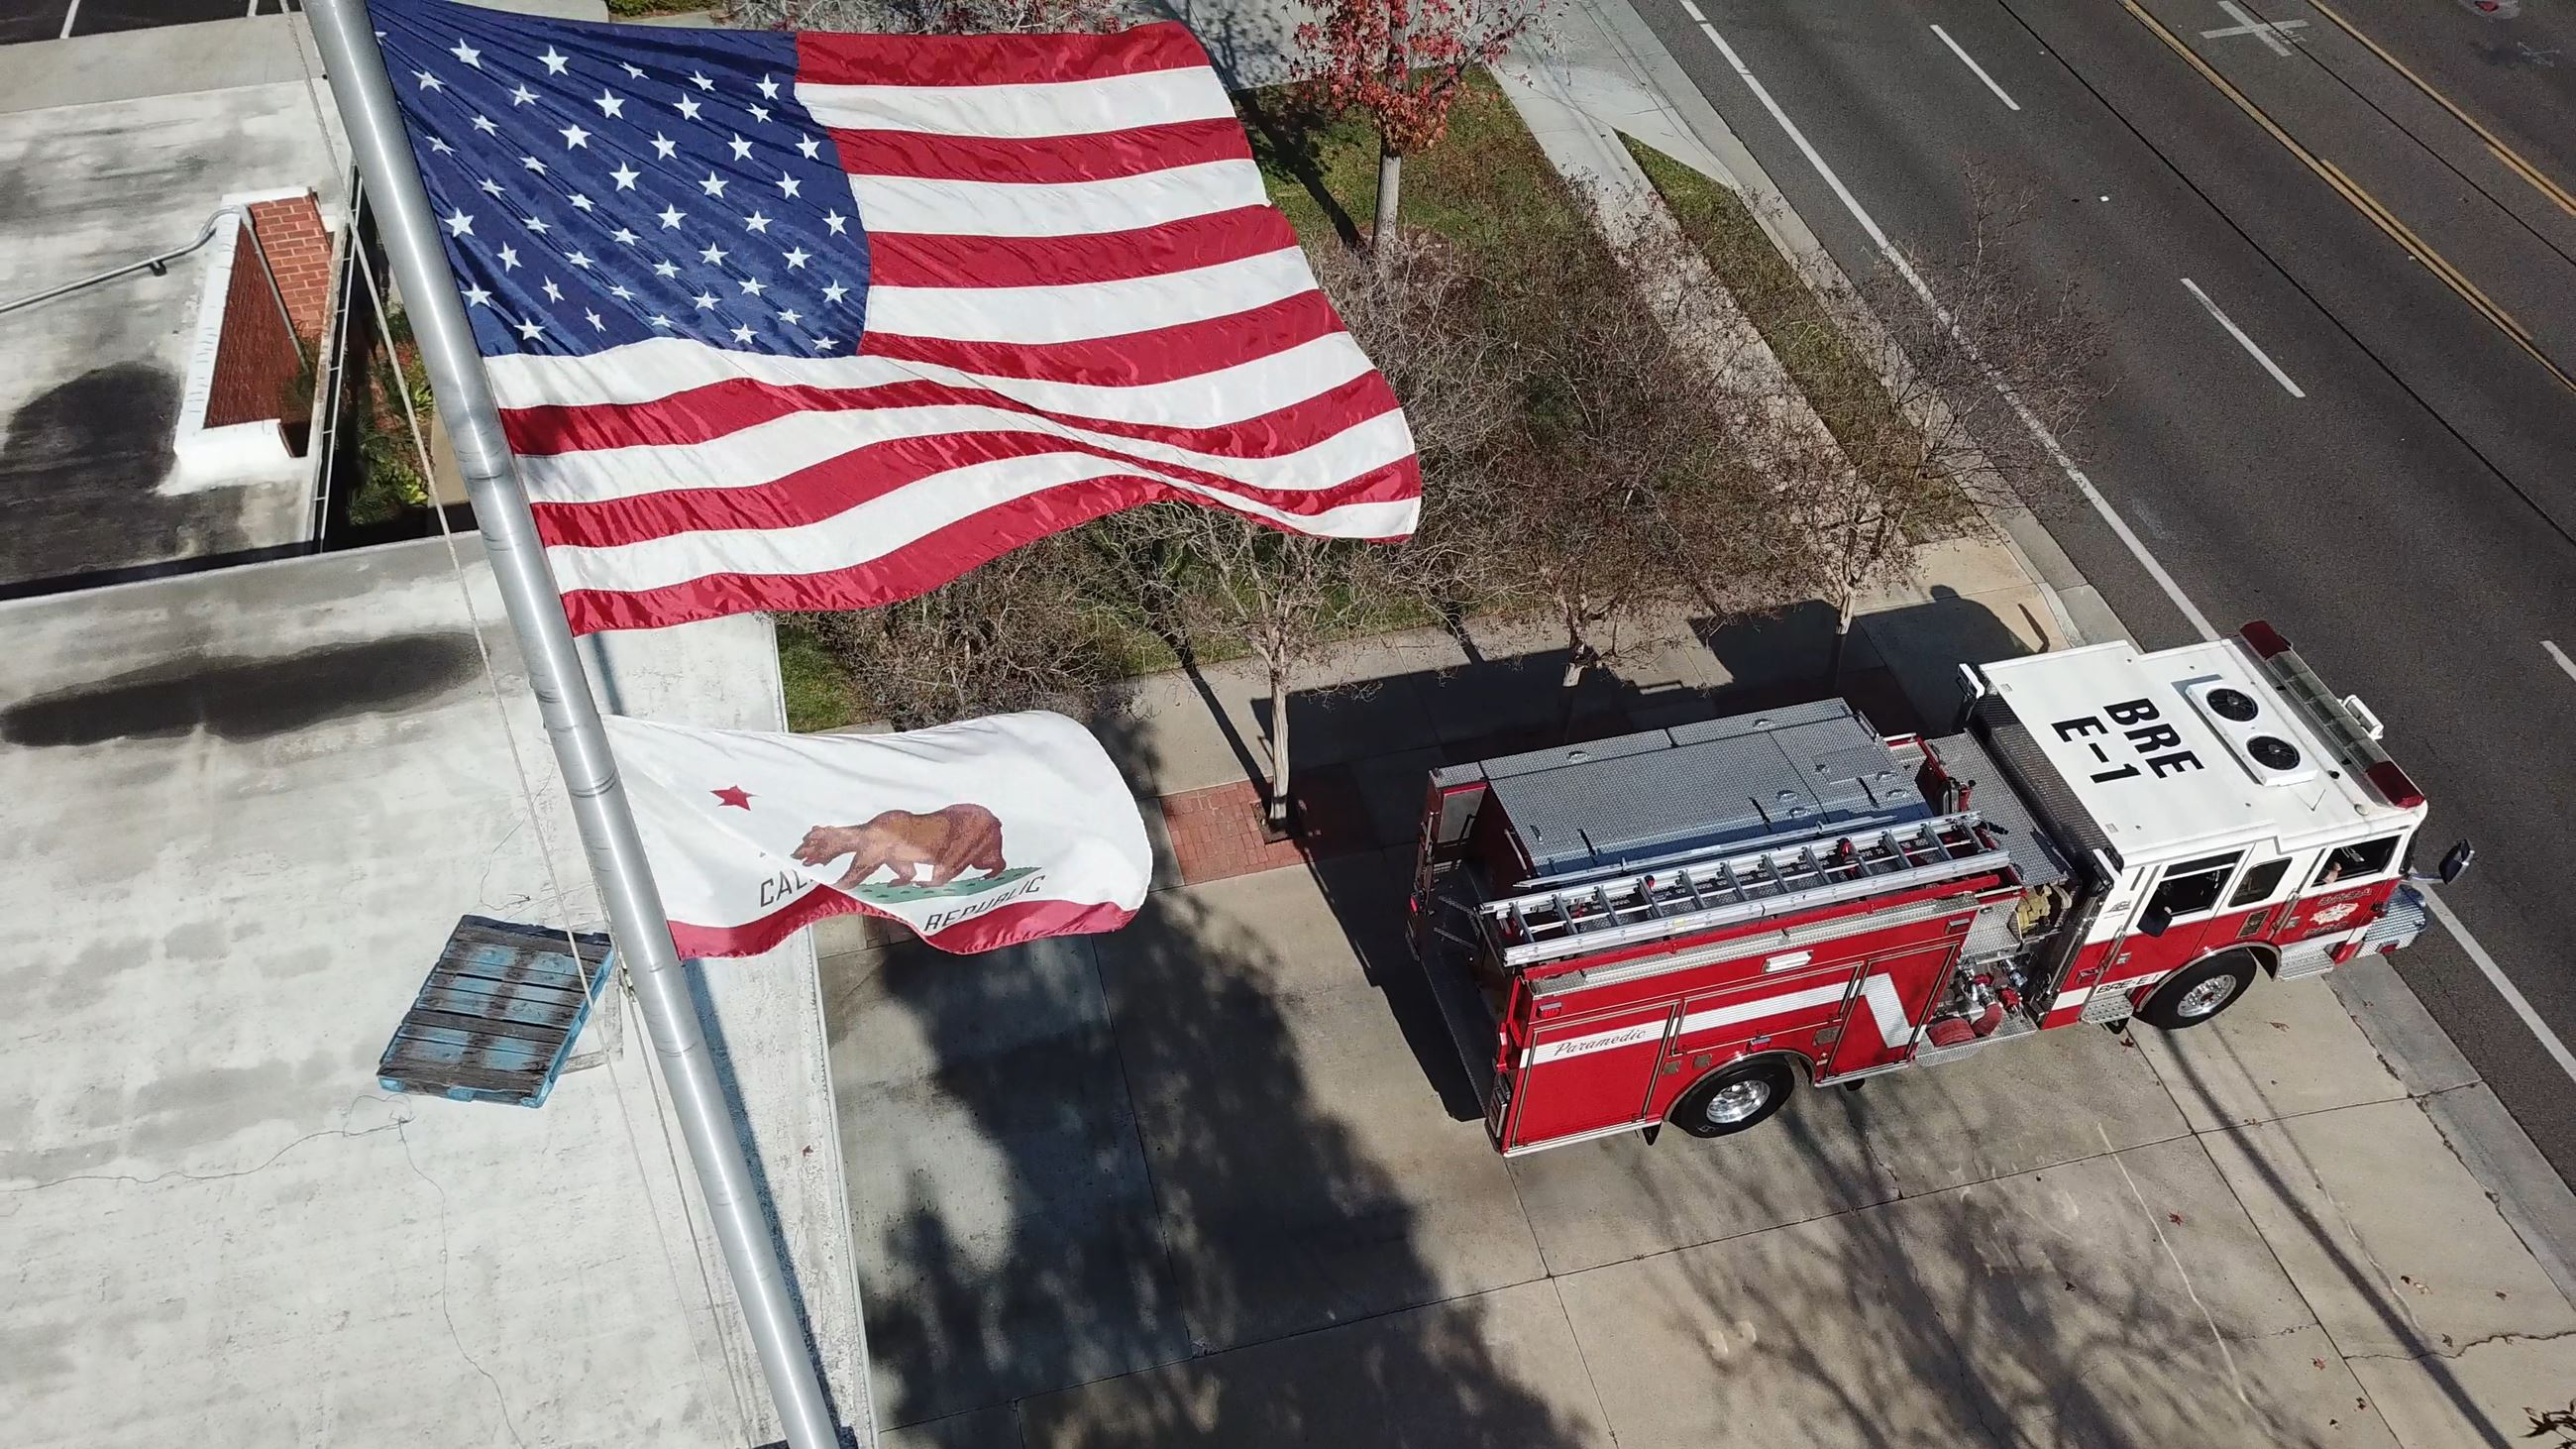 Fire engine rolling out of fire station one with the American Flag waving in the foreground